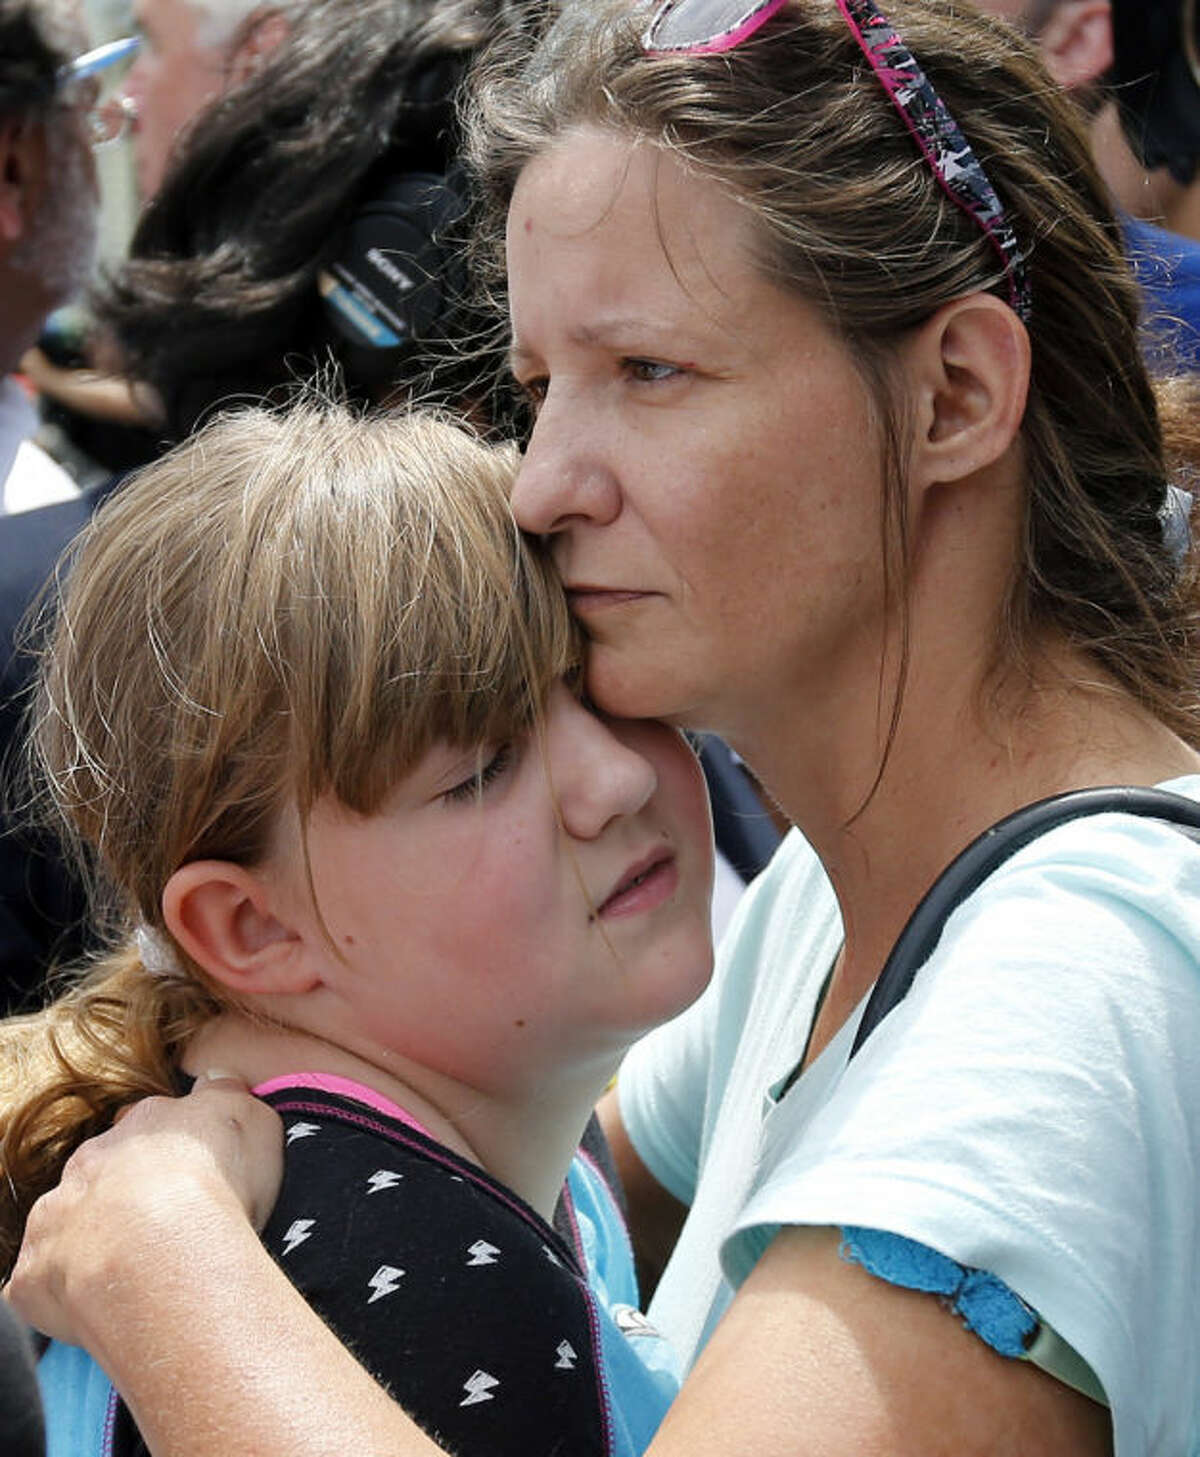 Geri Boyles of Lowell, Mass. hugs her daughter, Corinna, 10, outside a burned three-story apartment and business building in Lowell, Thursday, July 10, 2014. The neighbors lost people they knew in the fast-moving pre-dawn fire where officials said seven people died. (AP Photo/Elise Amendola)